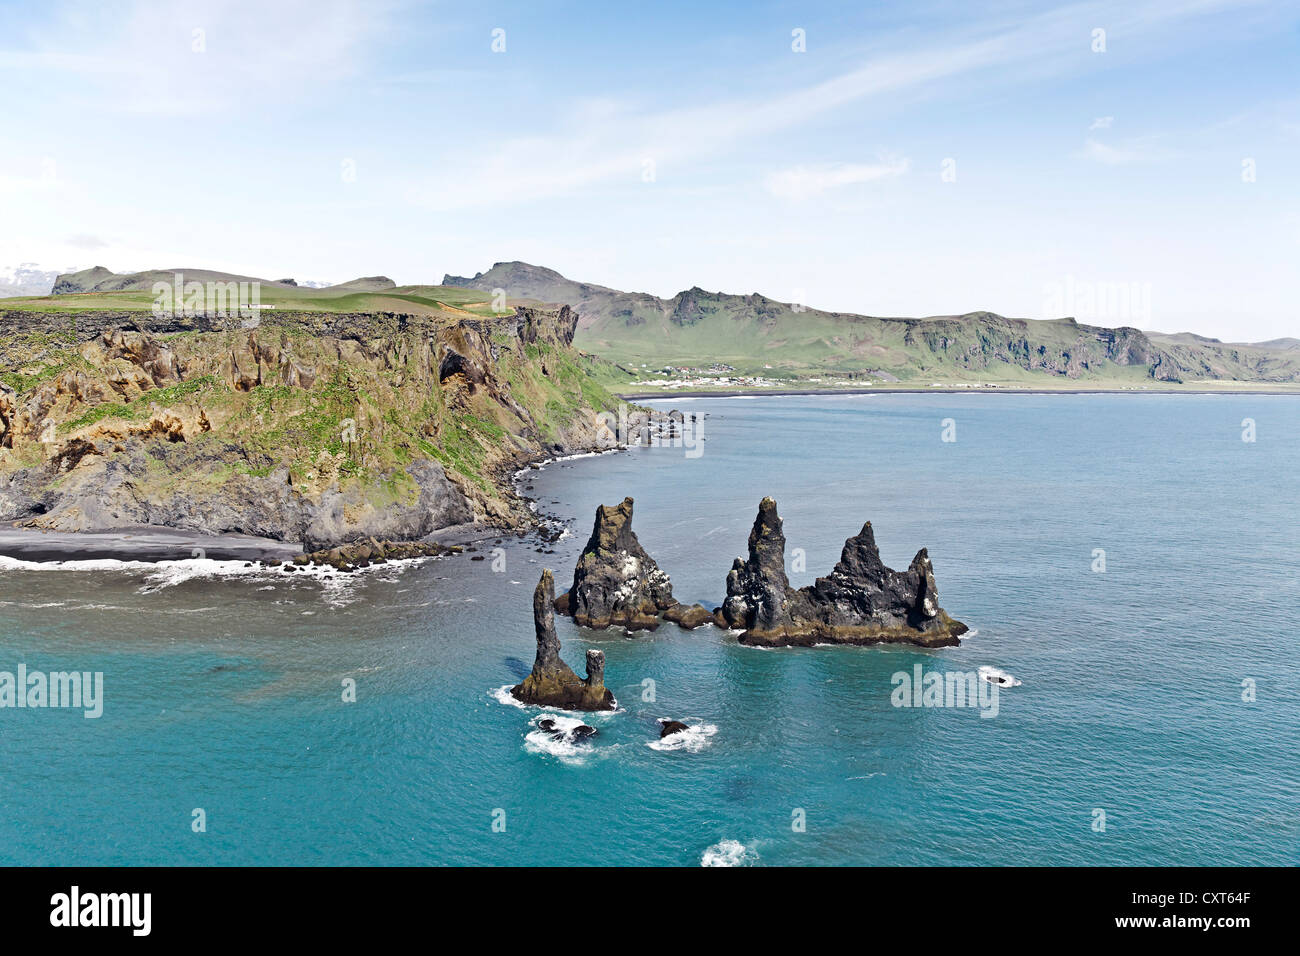 Aerial view, the three Skessudrangar rock spires, Skessudrangar, Landdrangar and Langhamrar off the southern coast - Stock Image